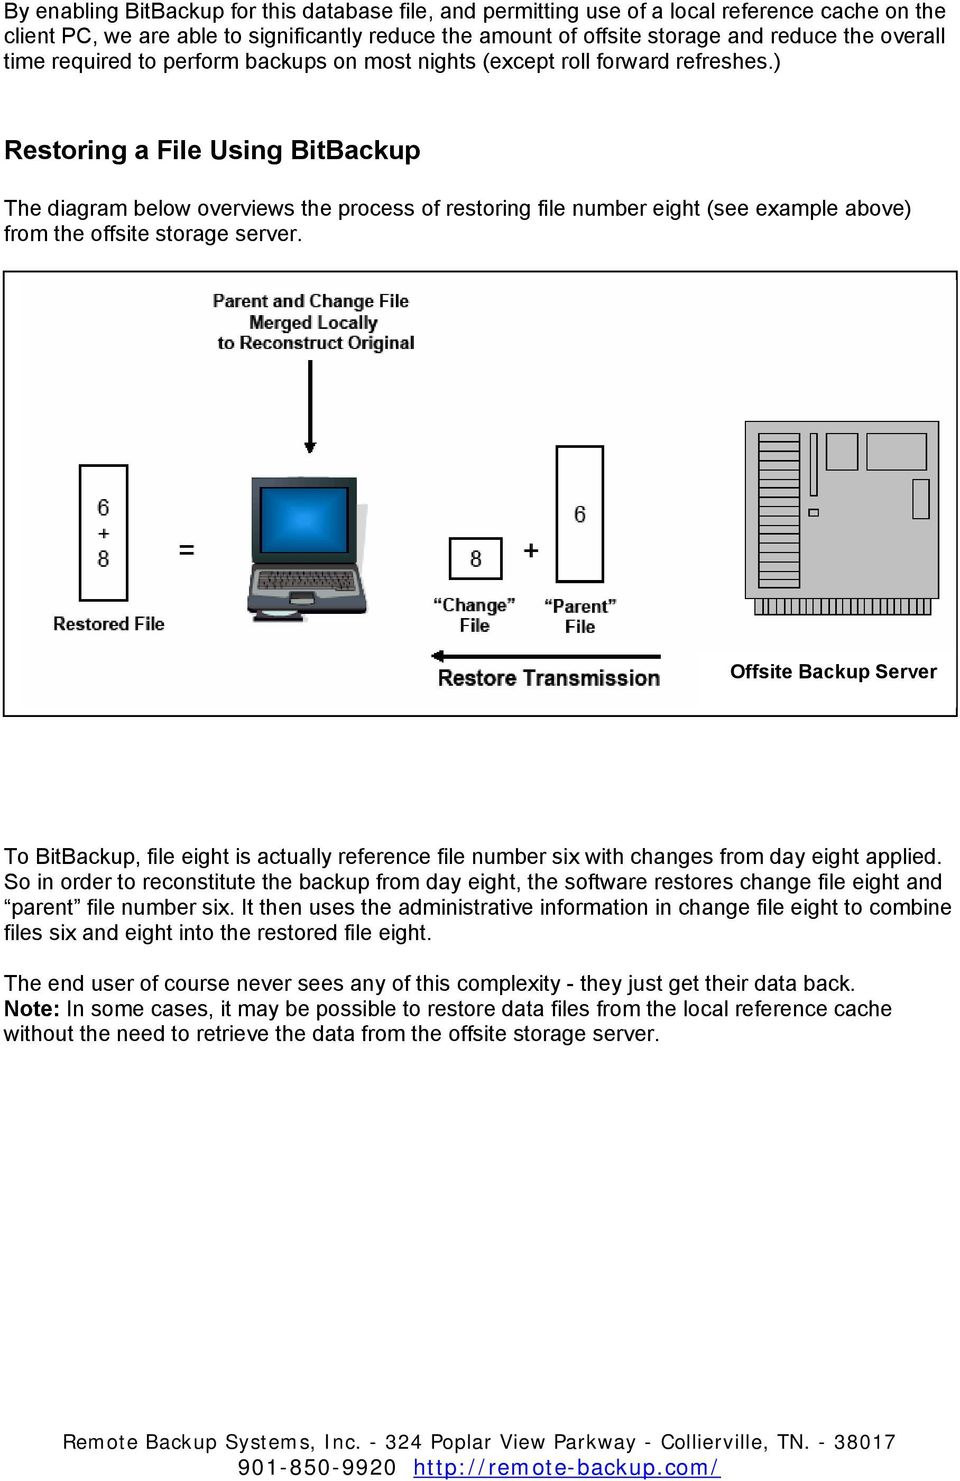 ) Restoring a File Using BitBackup The diagram below overviews the process of restoring file number eight (see example above) from the offsite storage server.